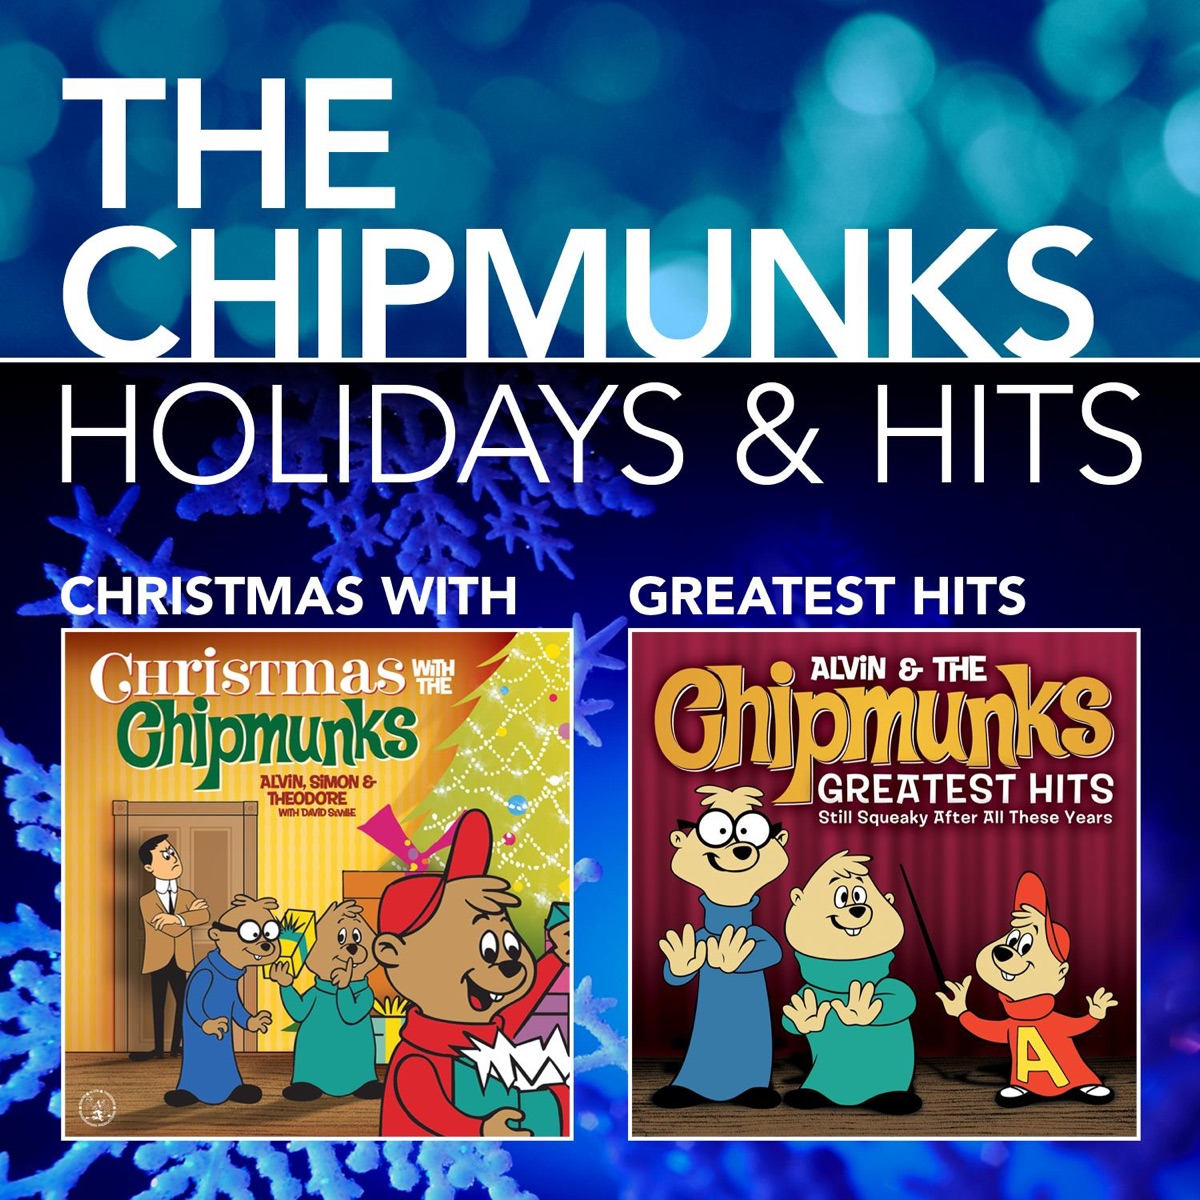 Holidays & Hits Album Cover by The Chipmunks